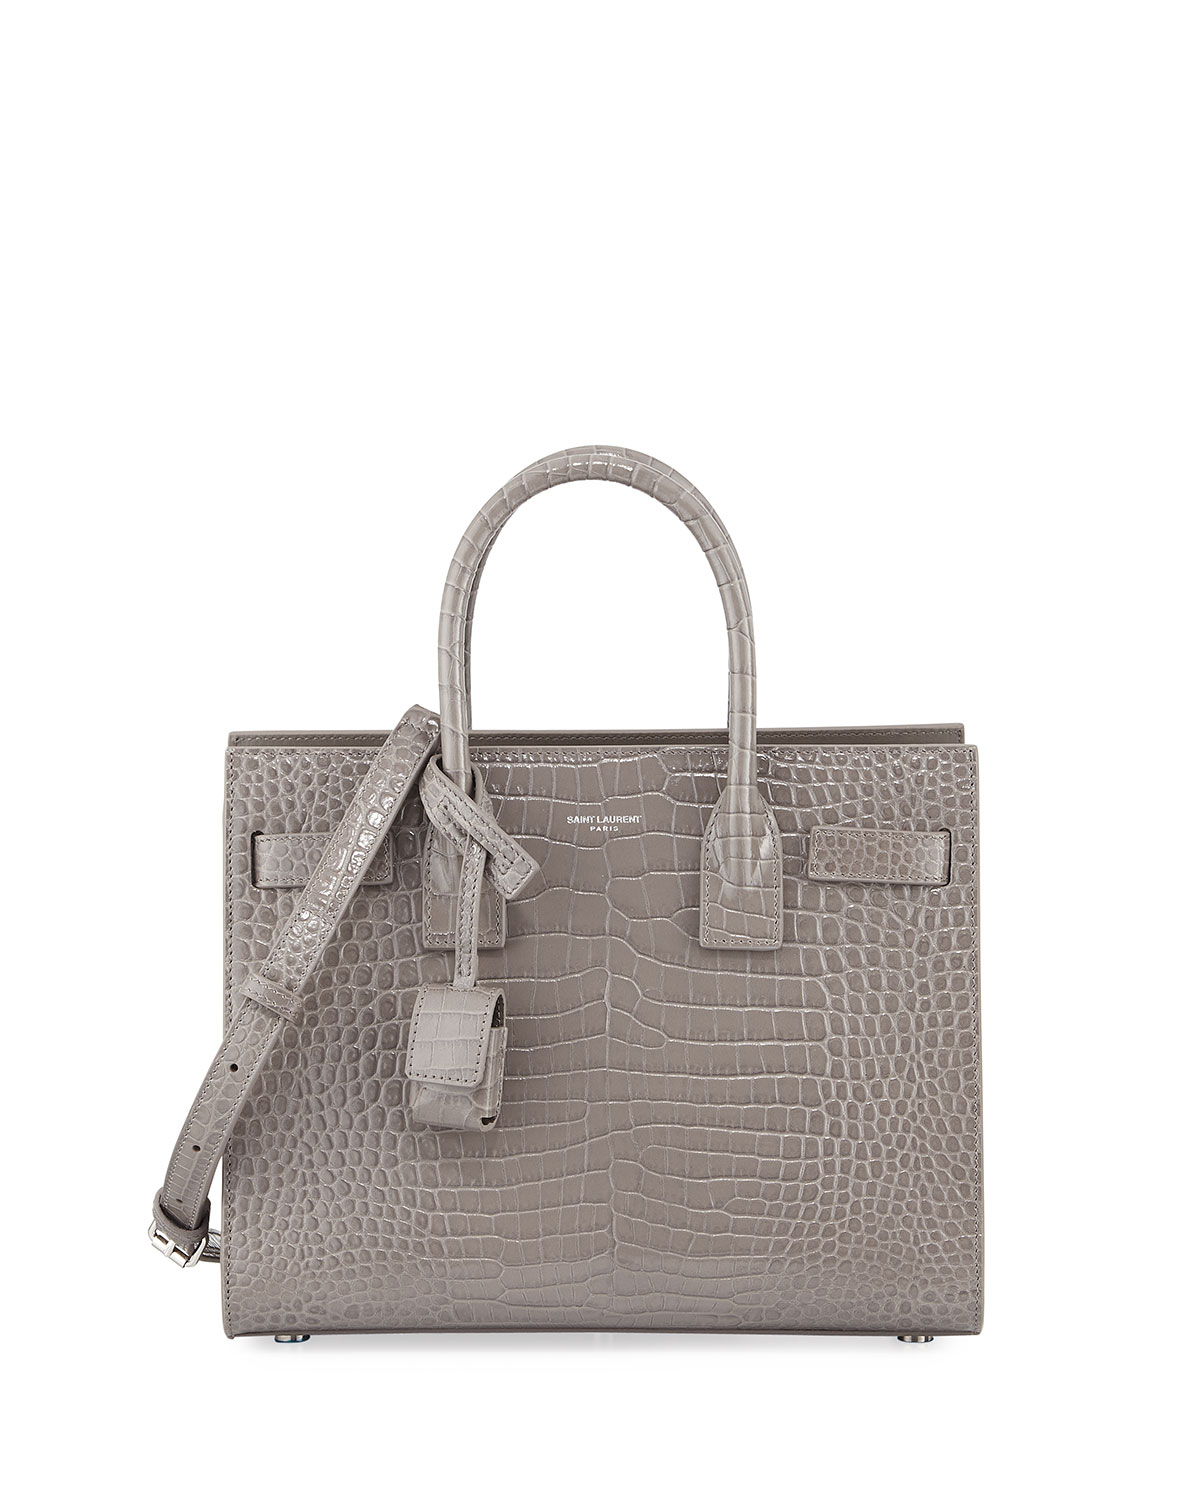 2edea83a24e Saint Laurent Sac de Jour Baby Crocodile-Embossed Leather Satchel Bag |  Neiman Marcus